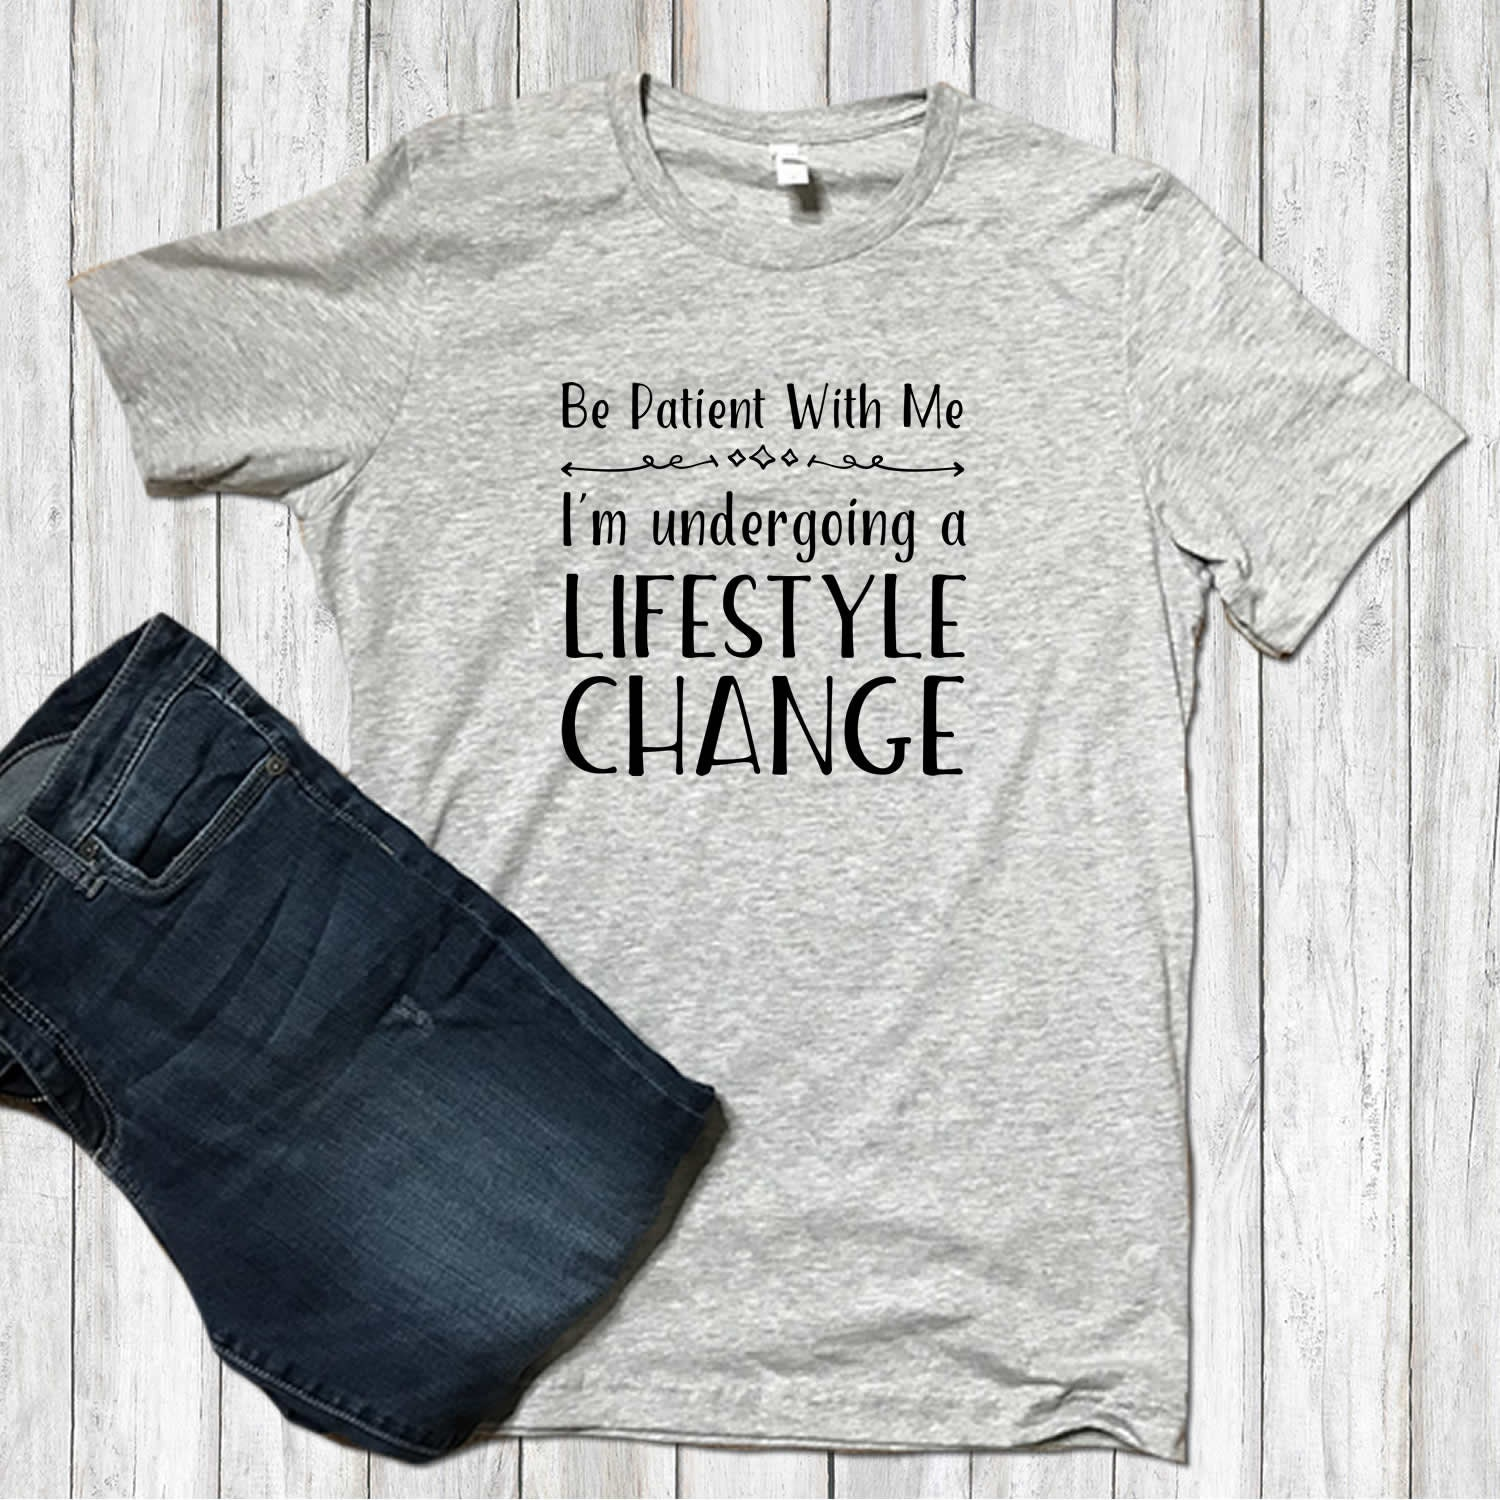 b3f2cf2465 Lifestyle Change Best Health Gifts Funny T-shirts Health and | Etsy